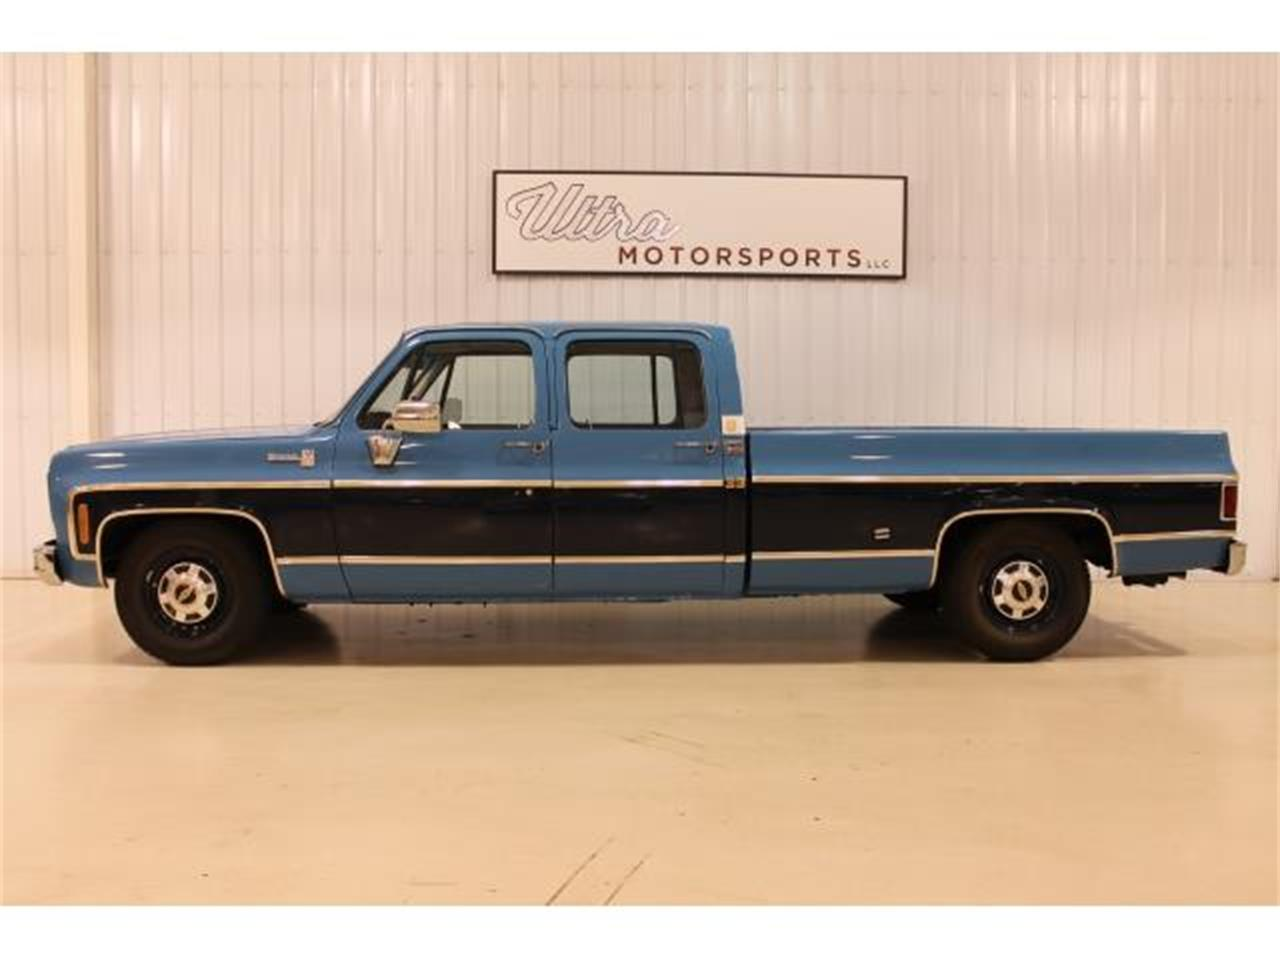 Large Picture of '77 Chevrolet Pickup - $22,000.00 Offered by Ultra Motorsports - NJ2F